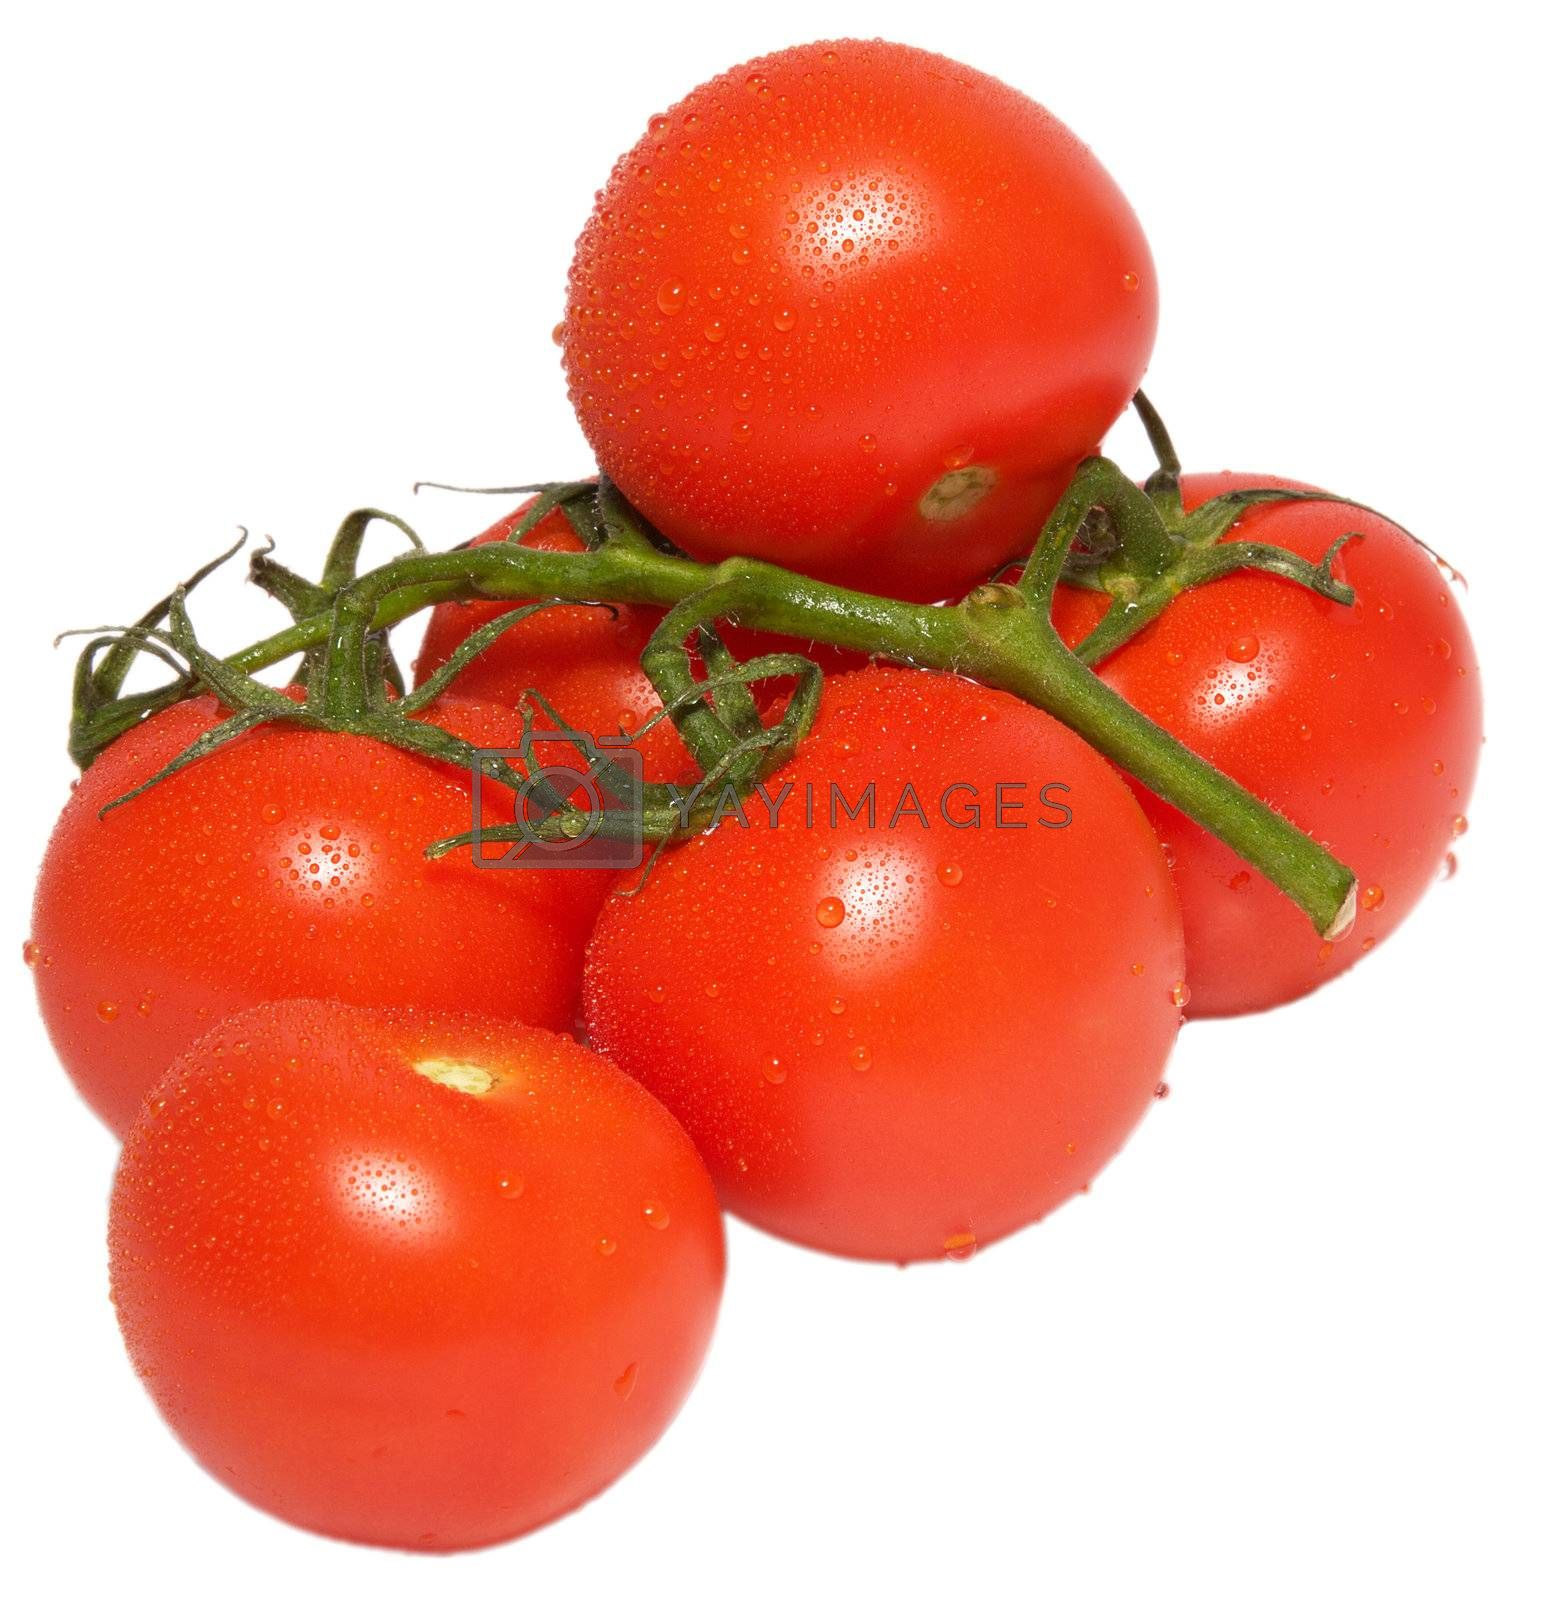 A brach of tomatos, with drops